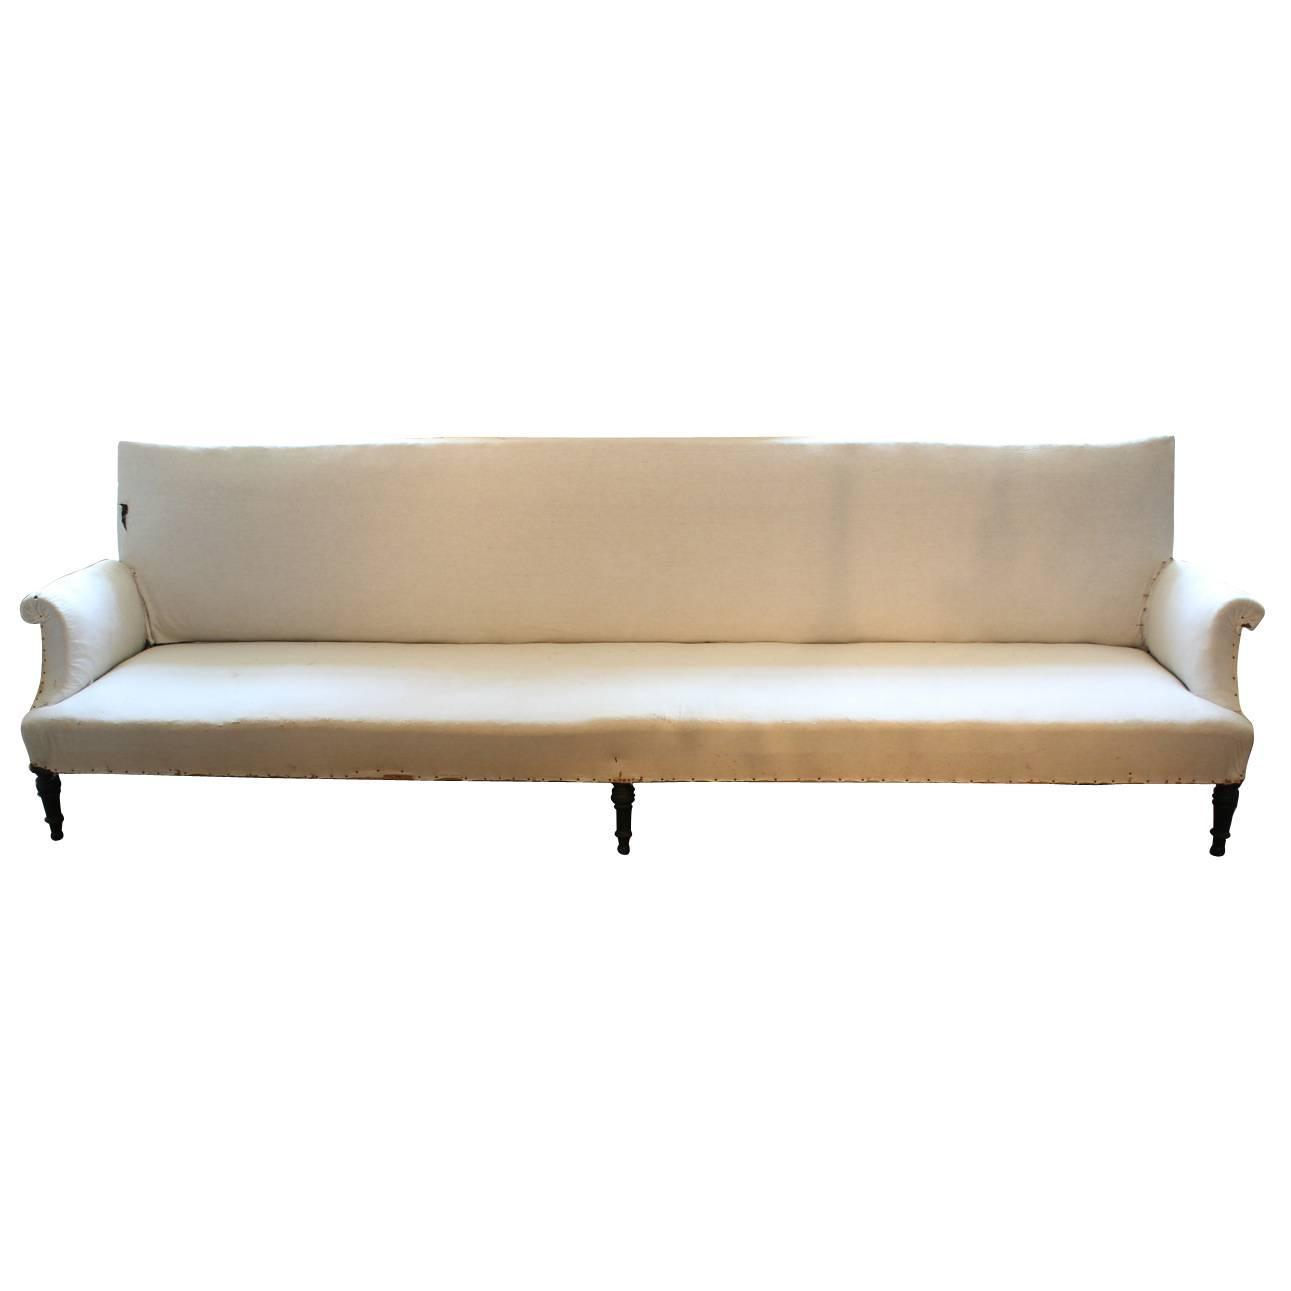 very large 19th century french napoleon iii sofa at 1stdibs. Black Bedroom Furniture Sets. Home Design Ideas